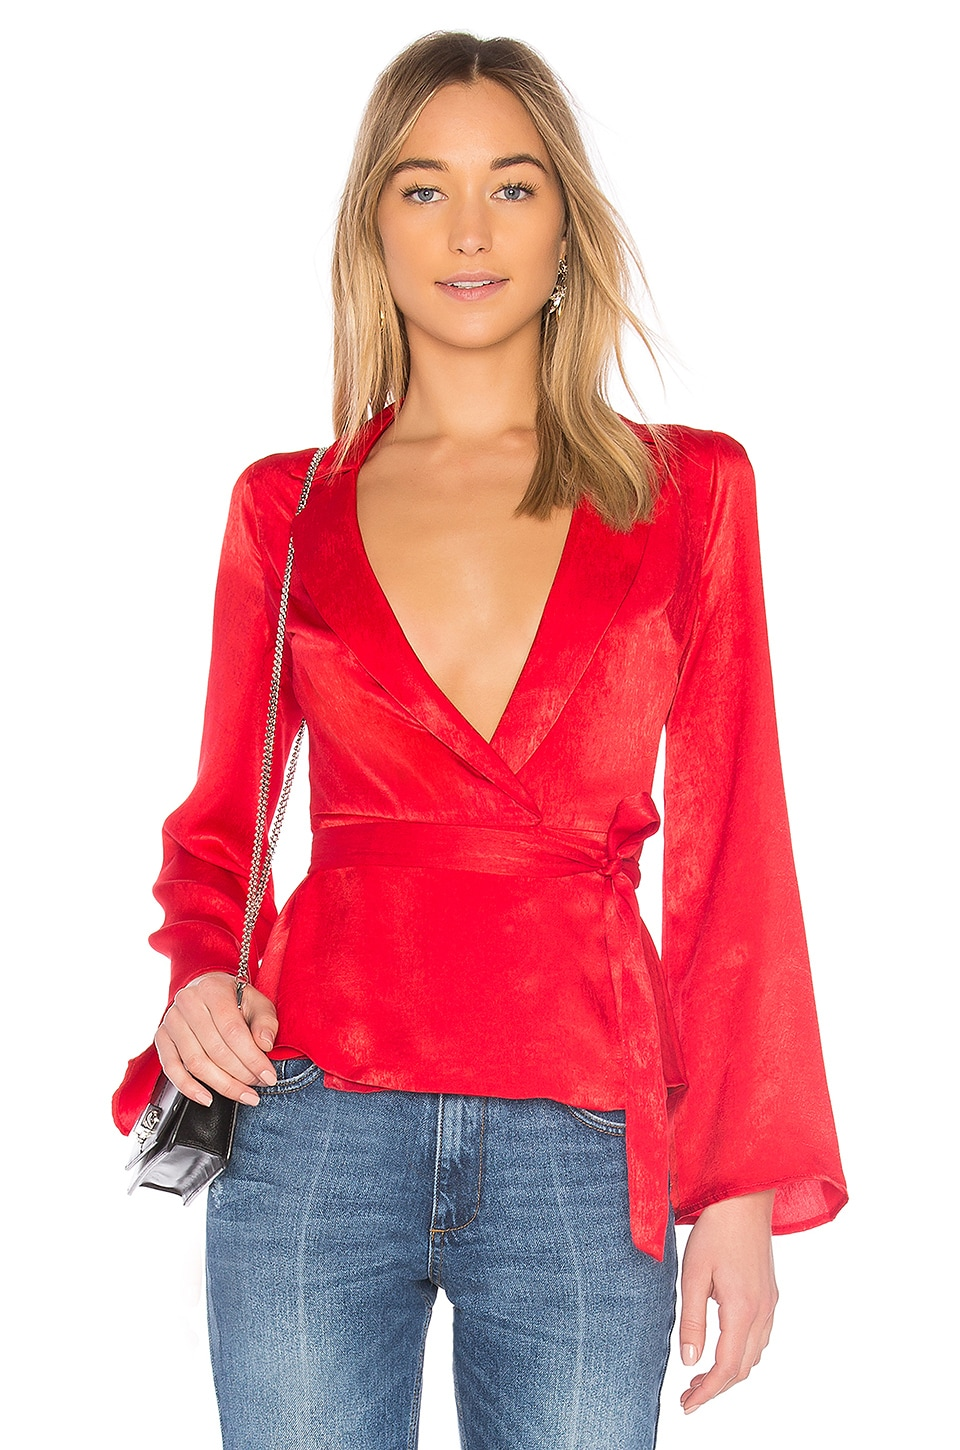 L'Academie The Russell Blouse en Red